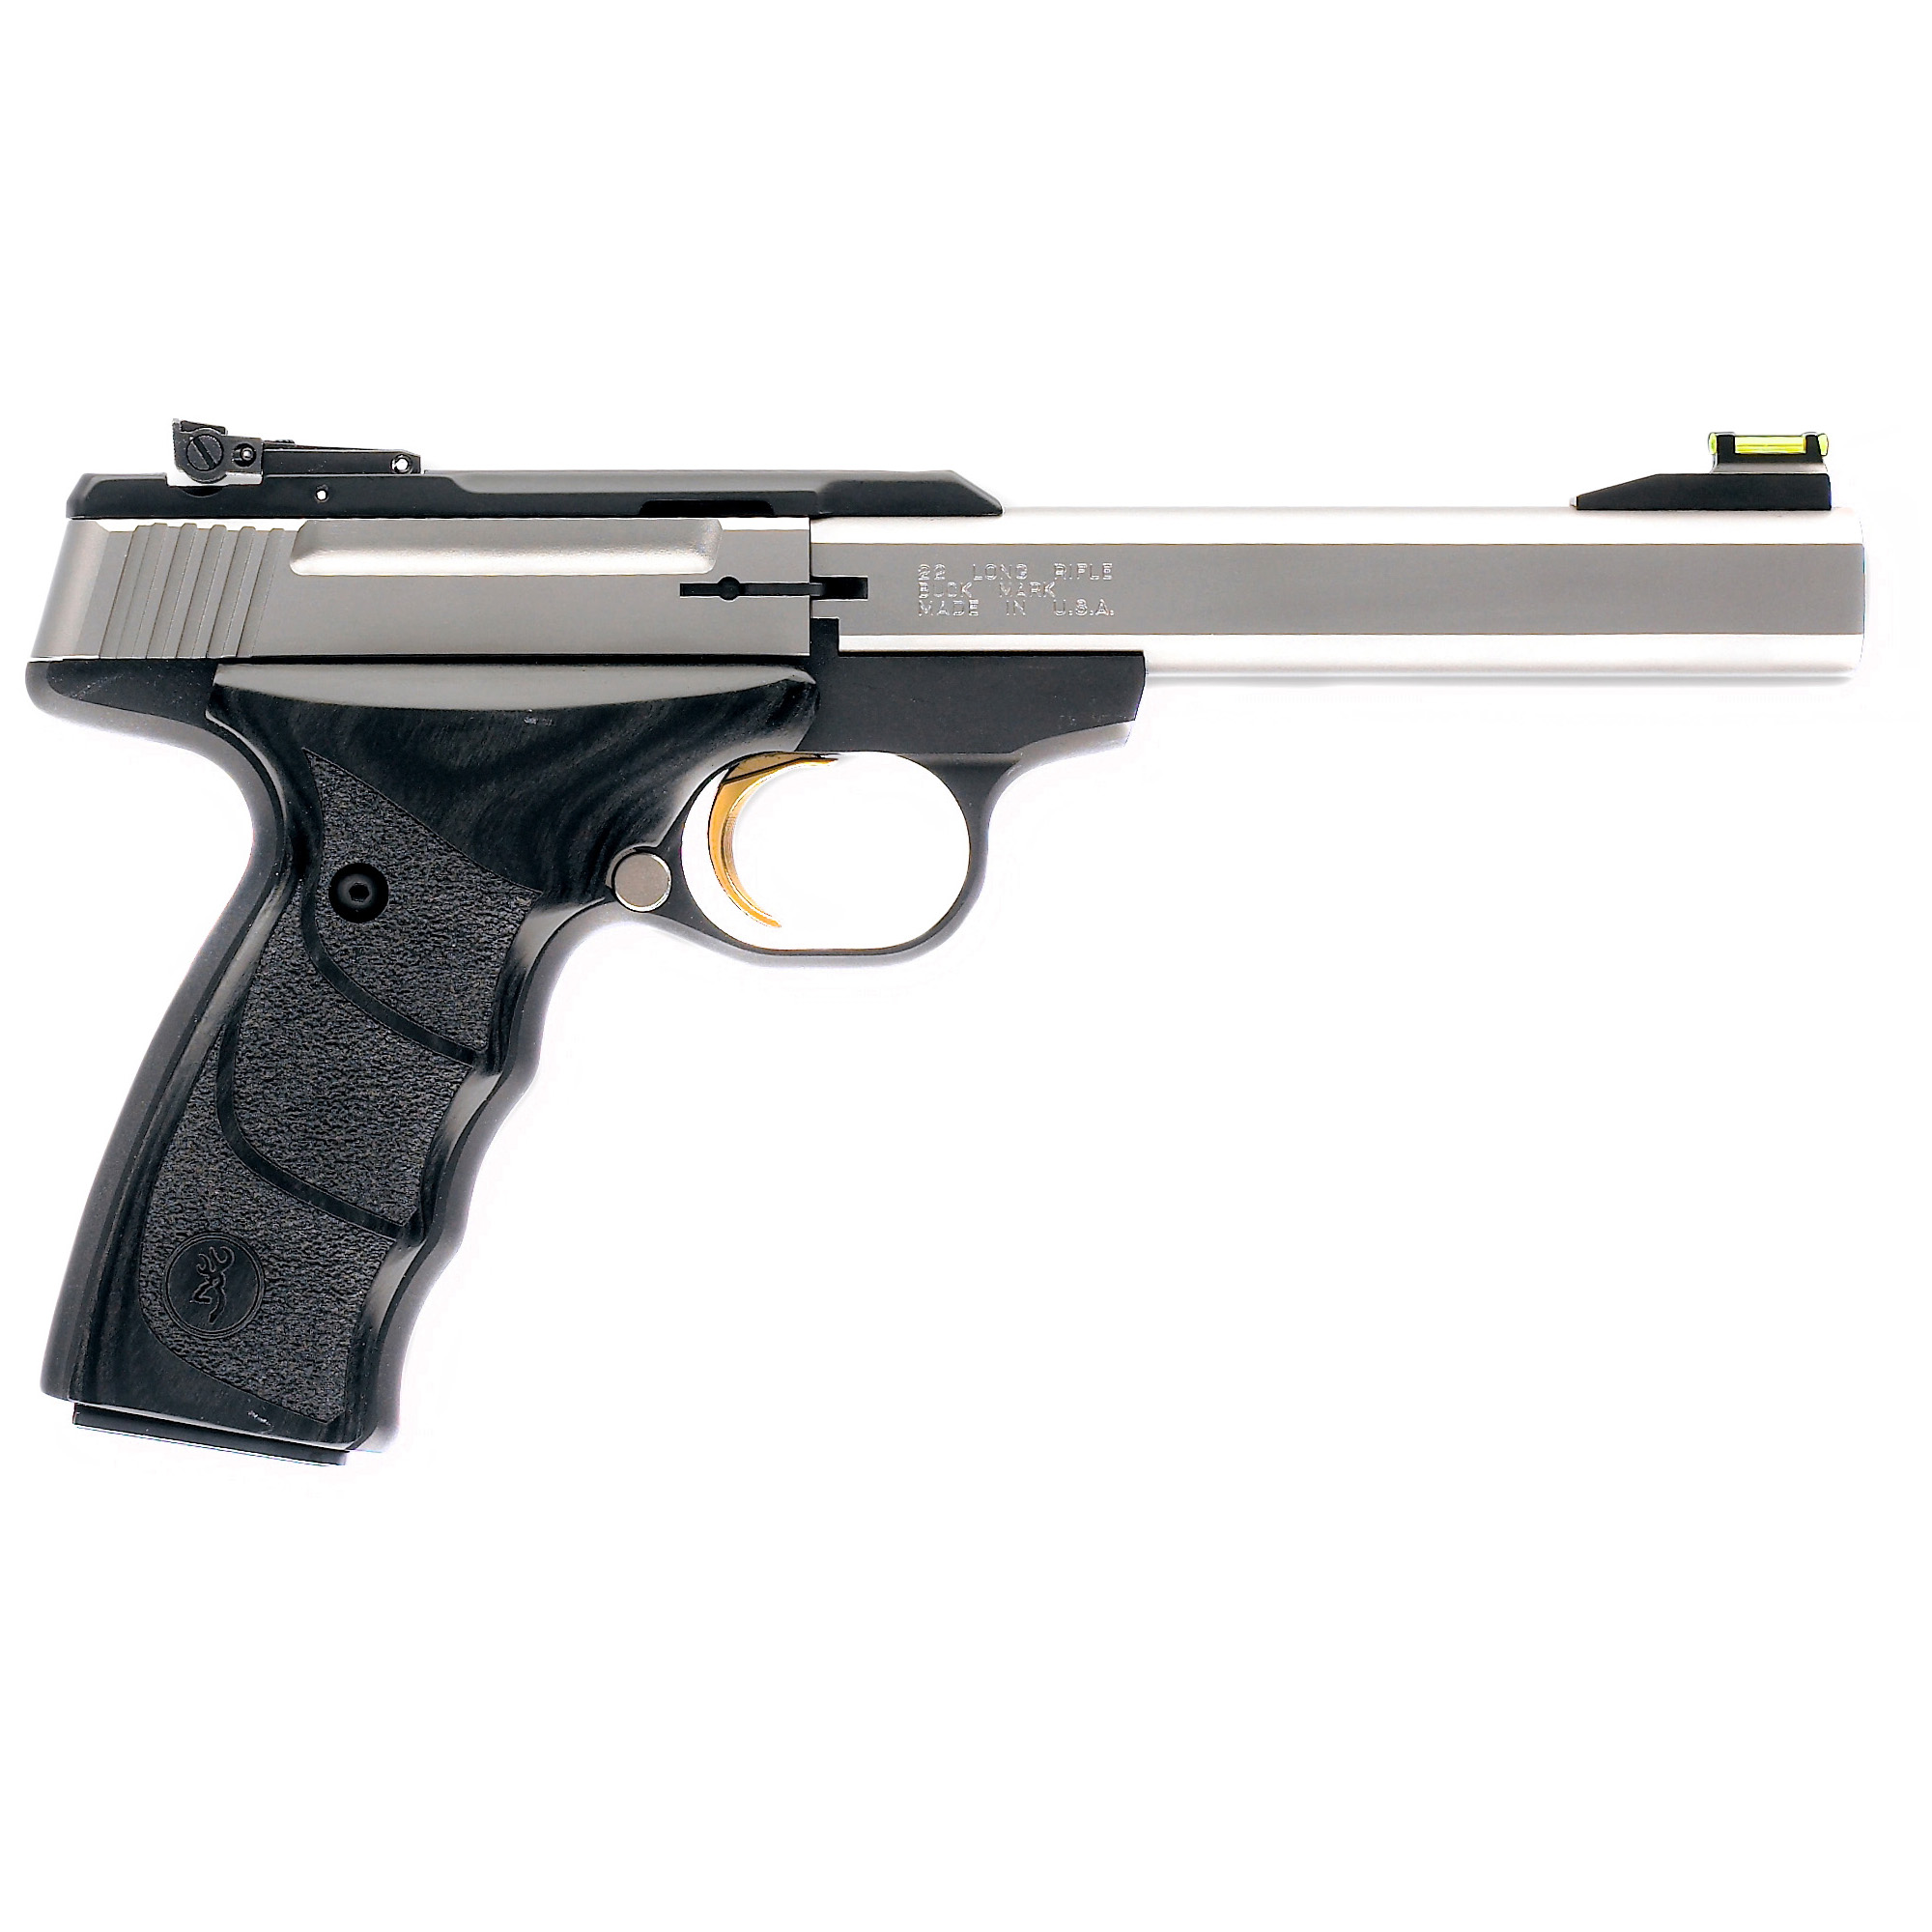 "Brown Bm Plus Udx 22lr 5.5"" Blk/sts"